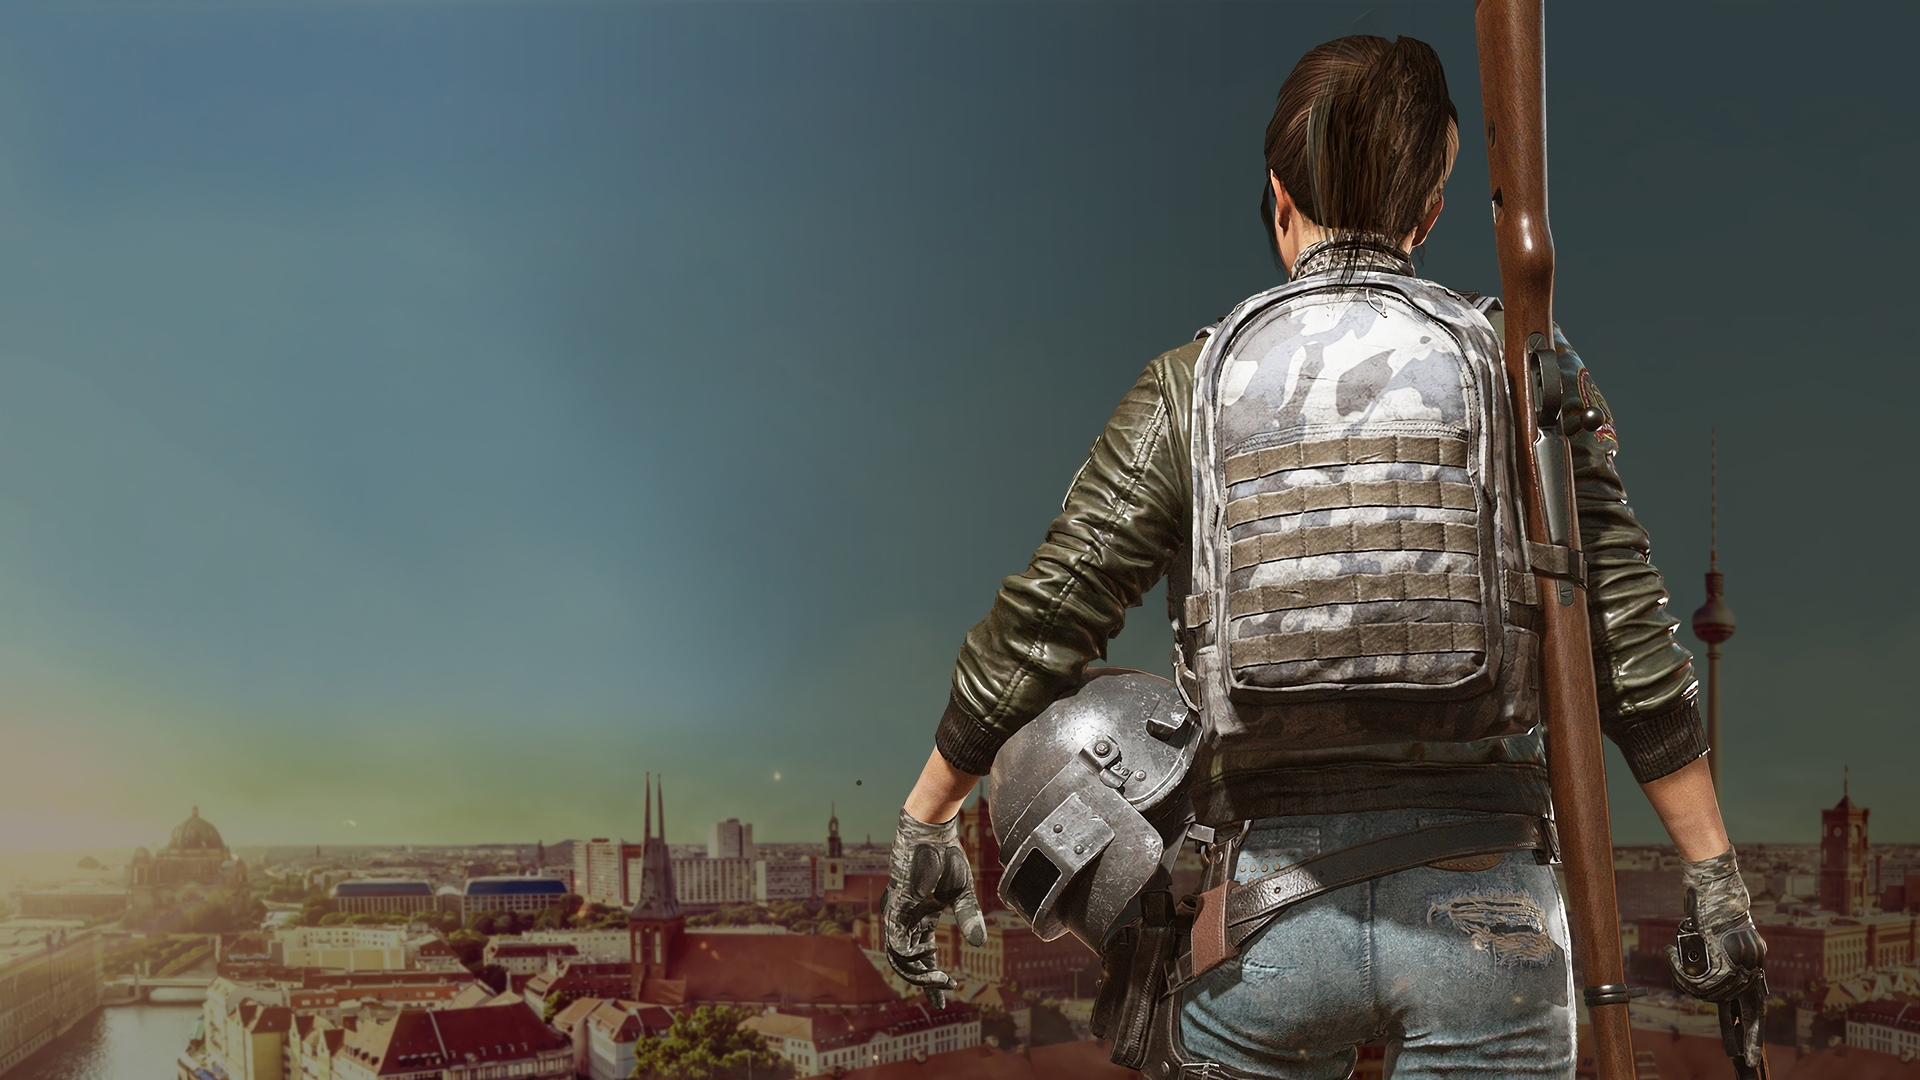 Pubg Mobile Full Screen Wallpapers: 1920x1080 Game Girl Pubg 4k Laptop Full HD 1080P HD 4k